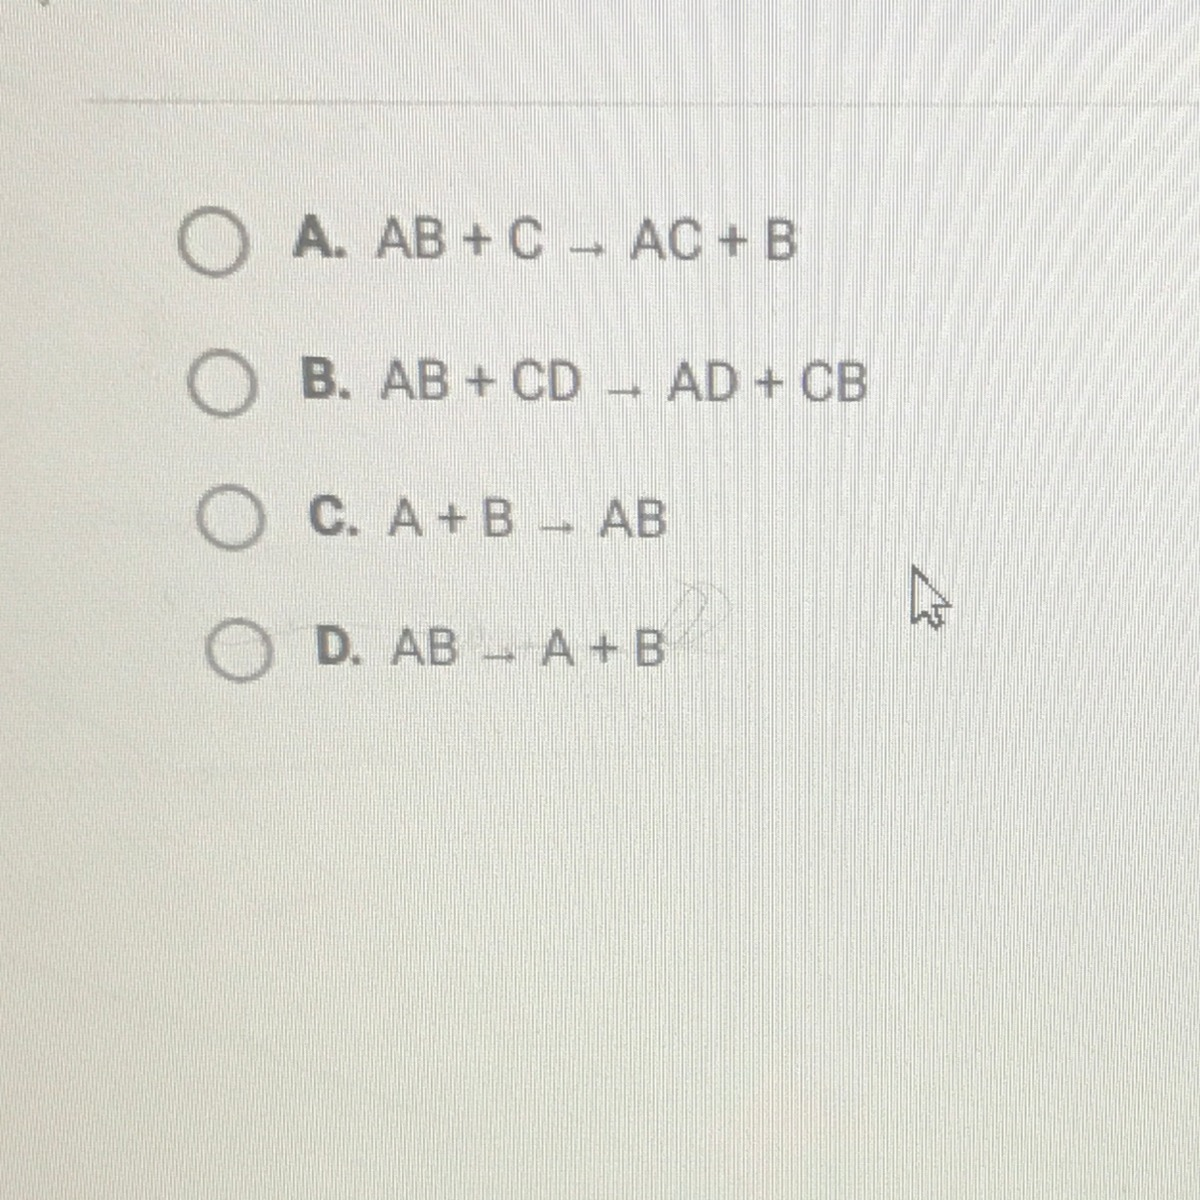 Which one of the following is the general equation for a